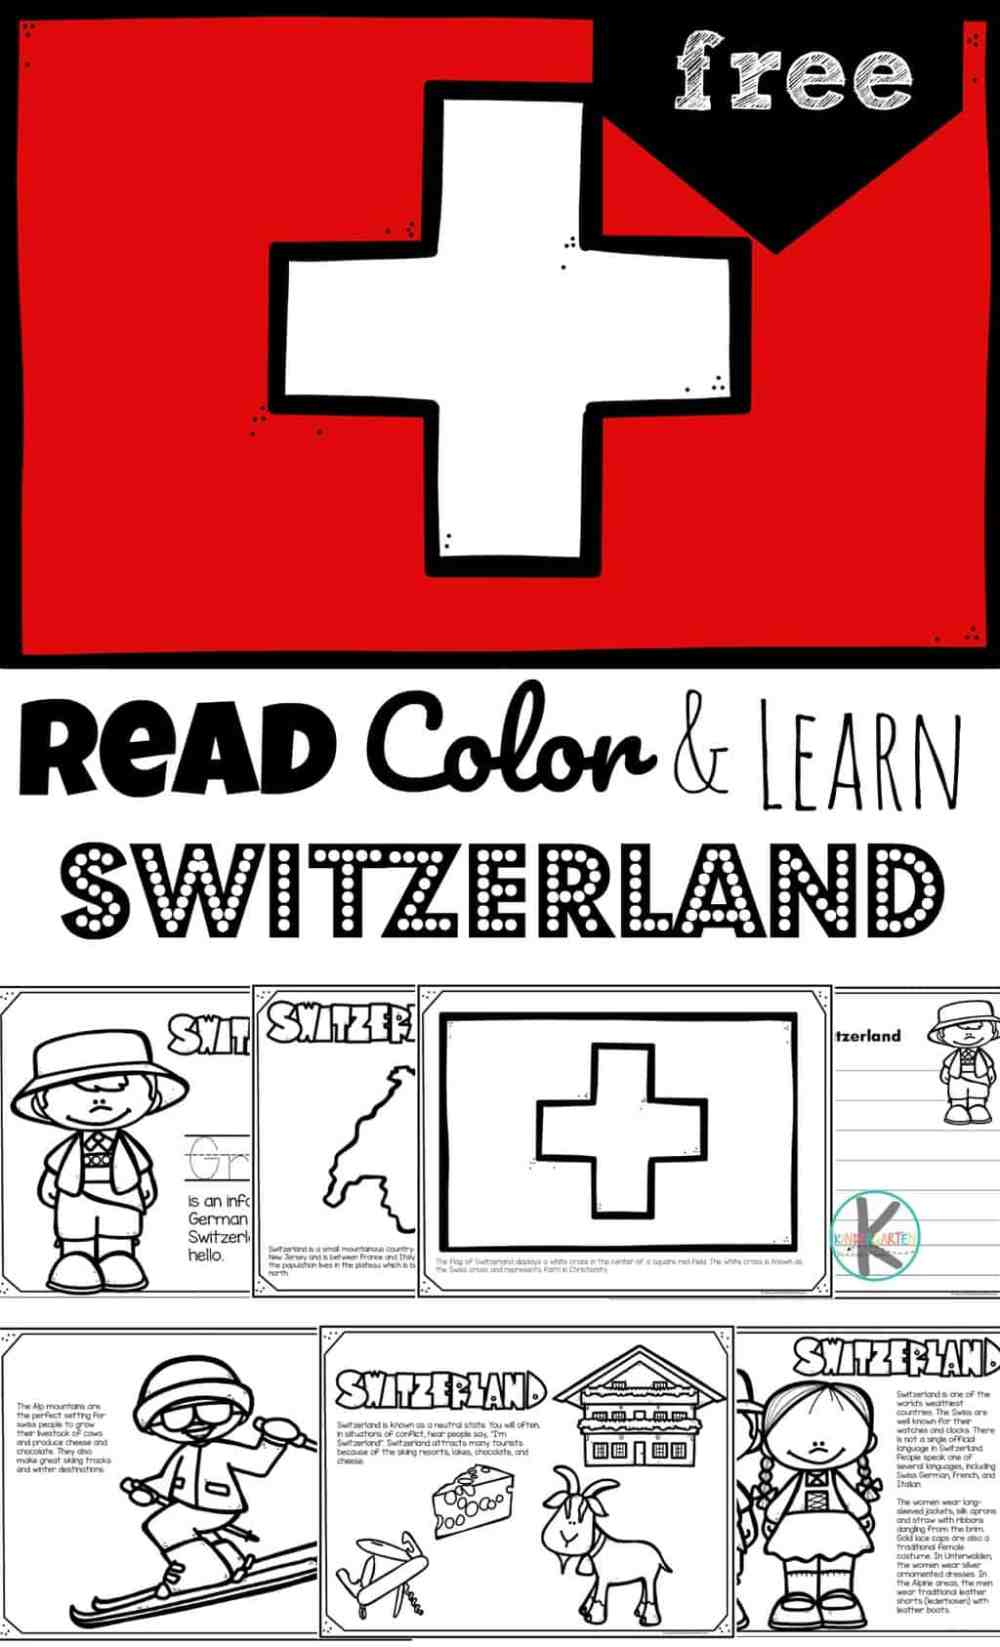 medium resolution of FREE Read Color and Learn about SWITZERLAND